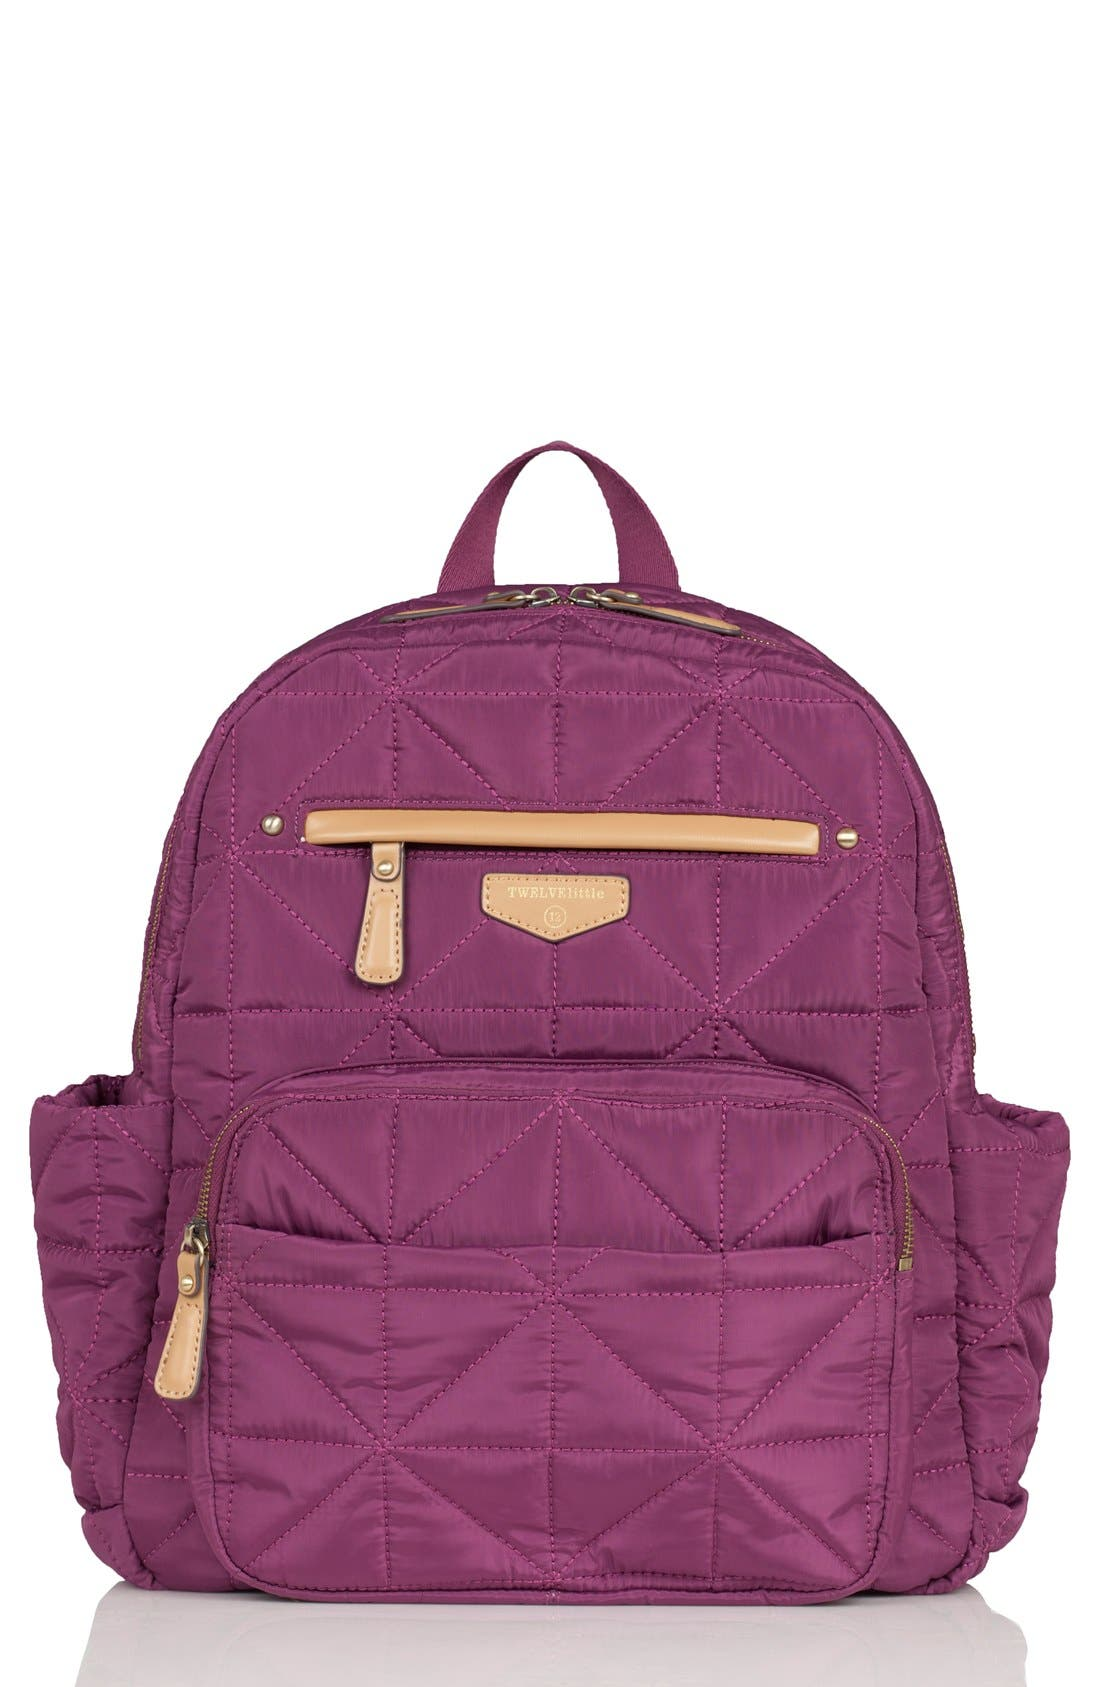 Quilted Water Resistant Nylon Diaper Backpack,                         Main,                         color, Plum